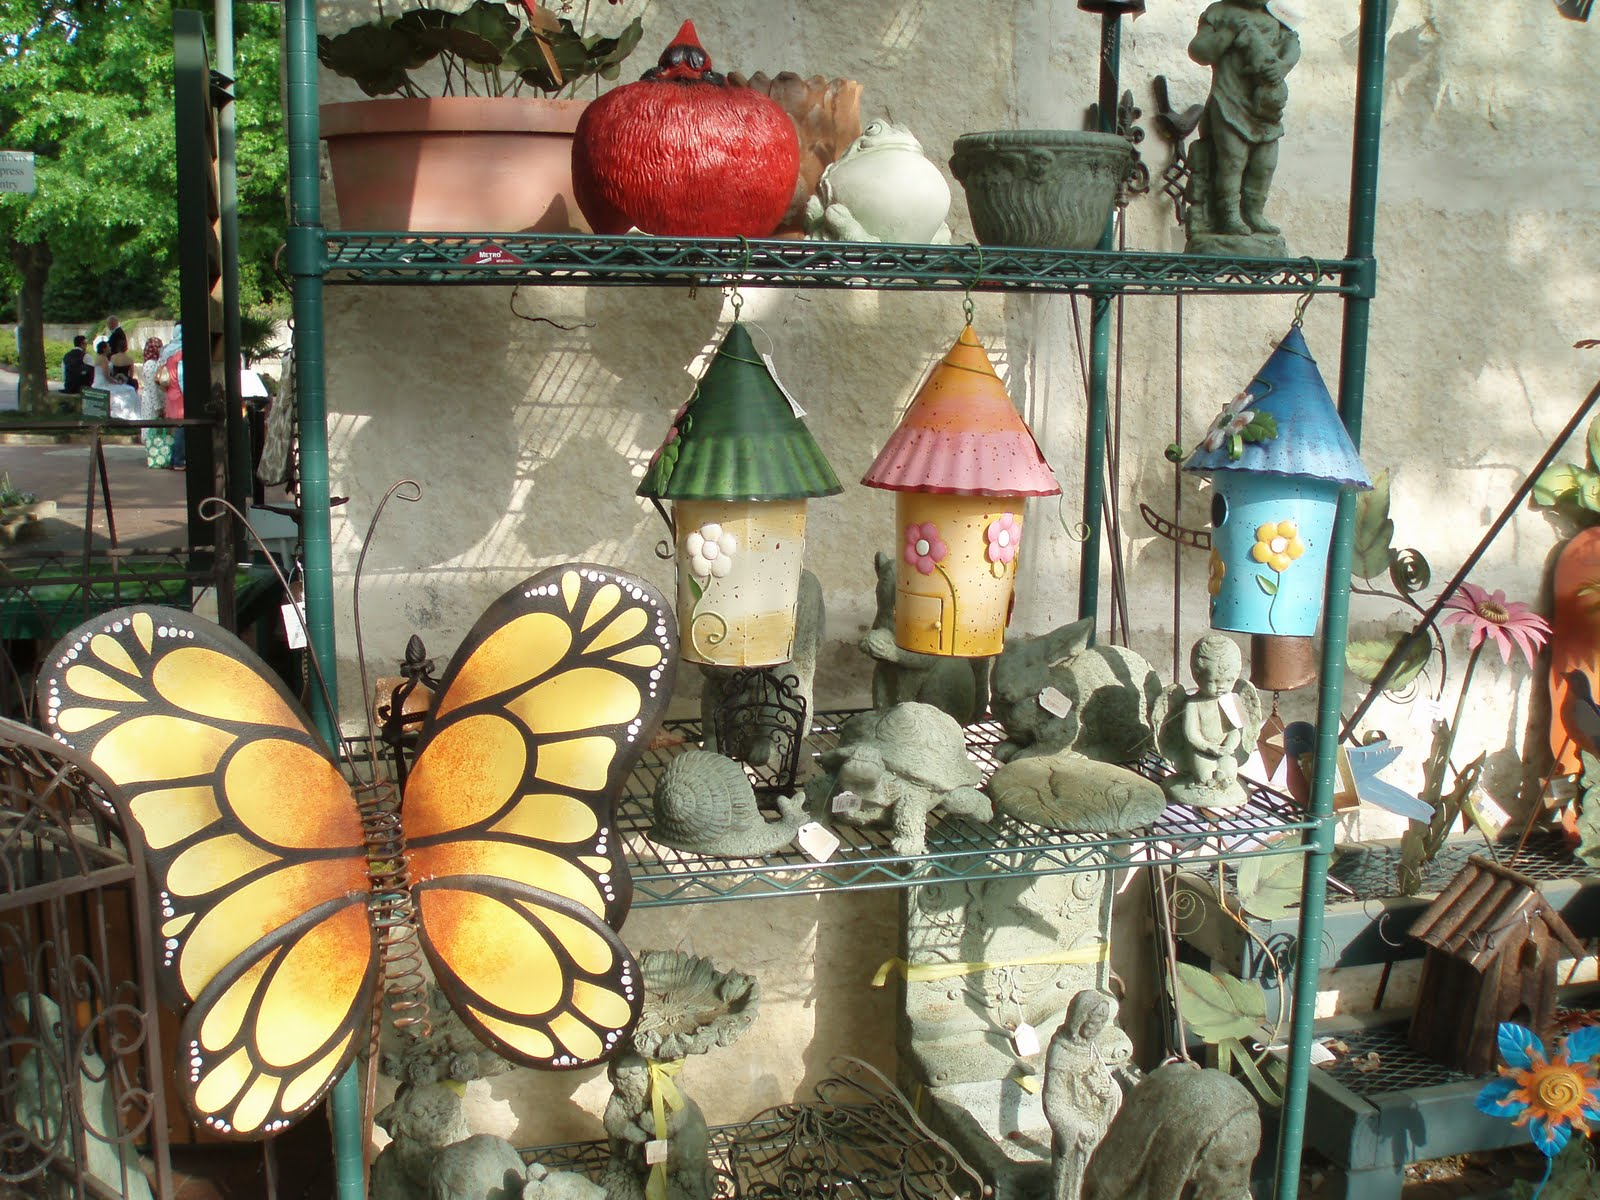 Ethnic indian decor garden decoration accessories and windchimes - Garden decor accessories ...